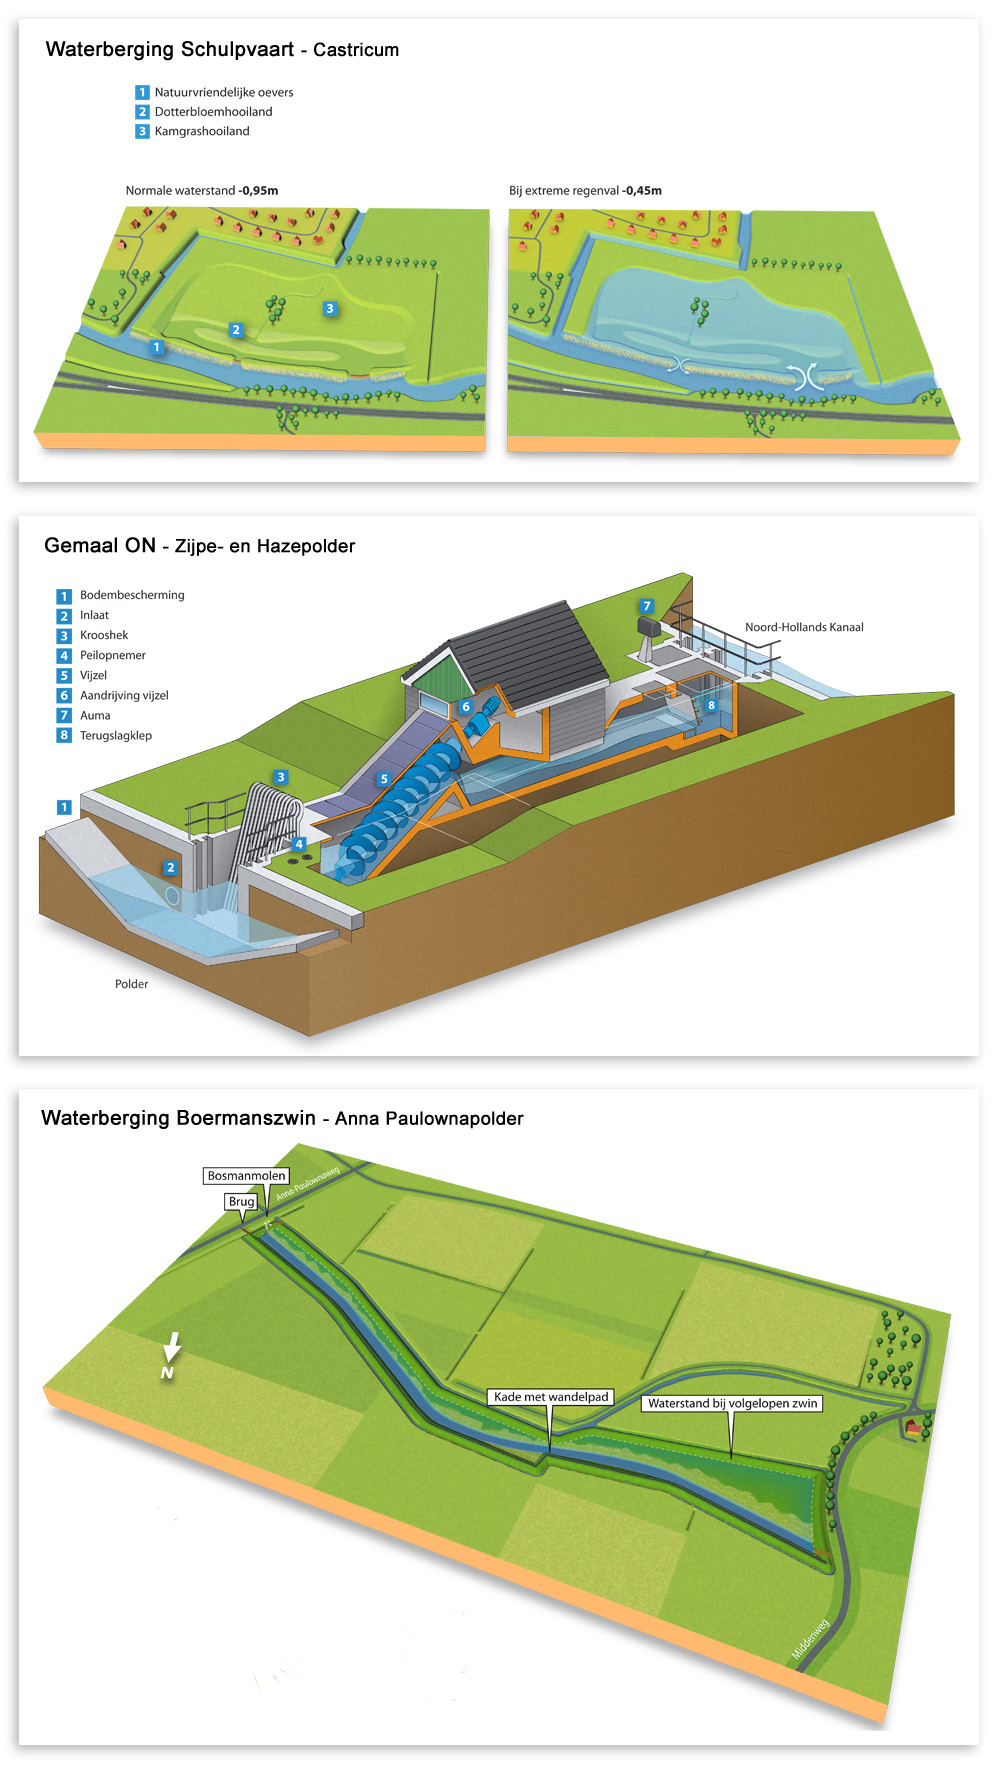 infographics & illustraties van waterberging schulpvaart, gemaal on, boermanszwin